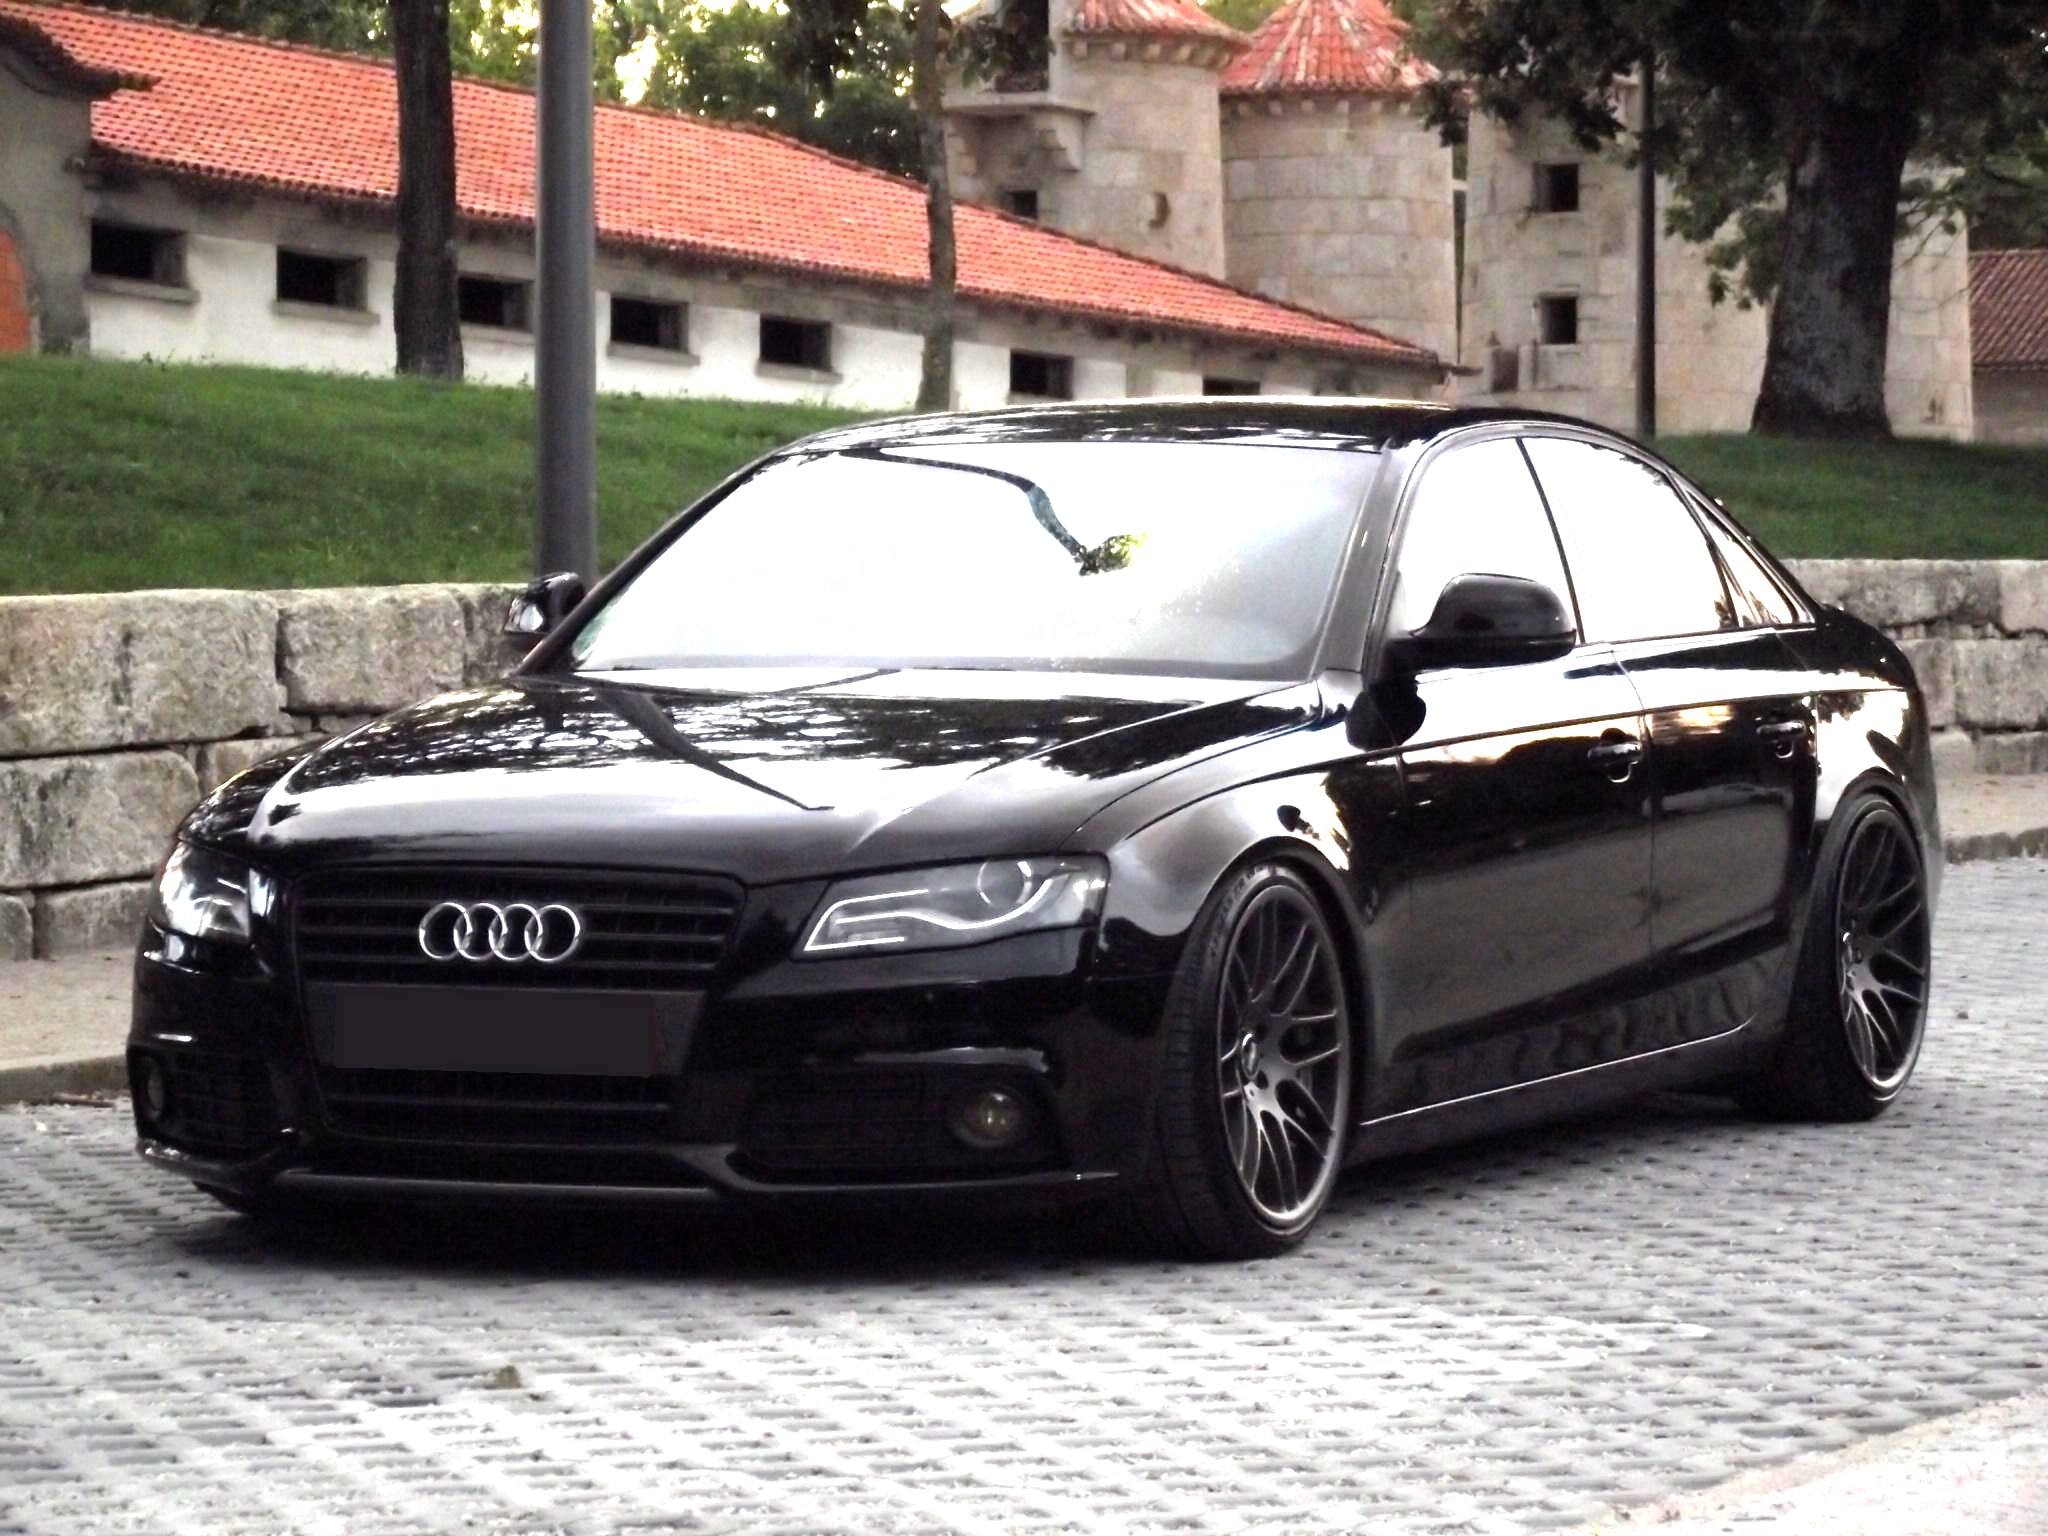 Audi A4 Custom Wheels Vmr Vb3 19x10 0 Et 33 Tire Size